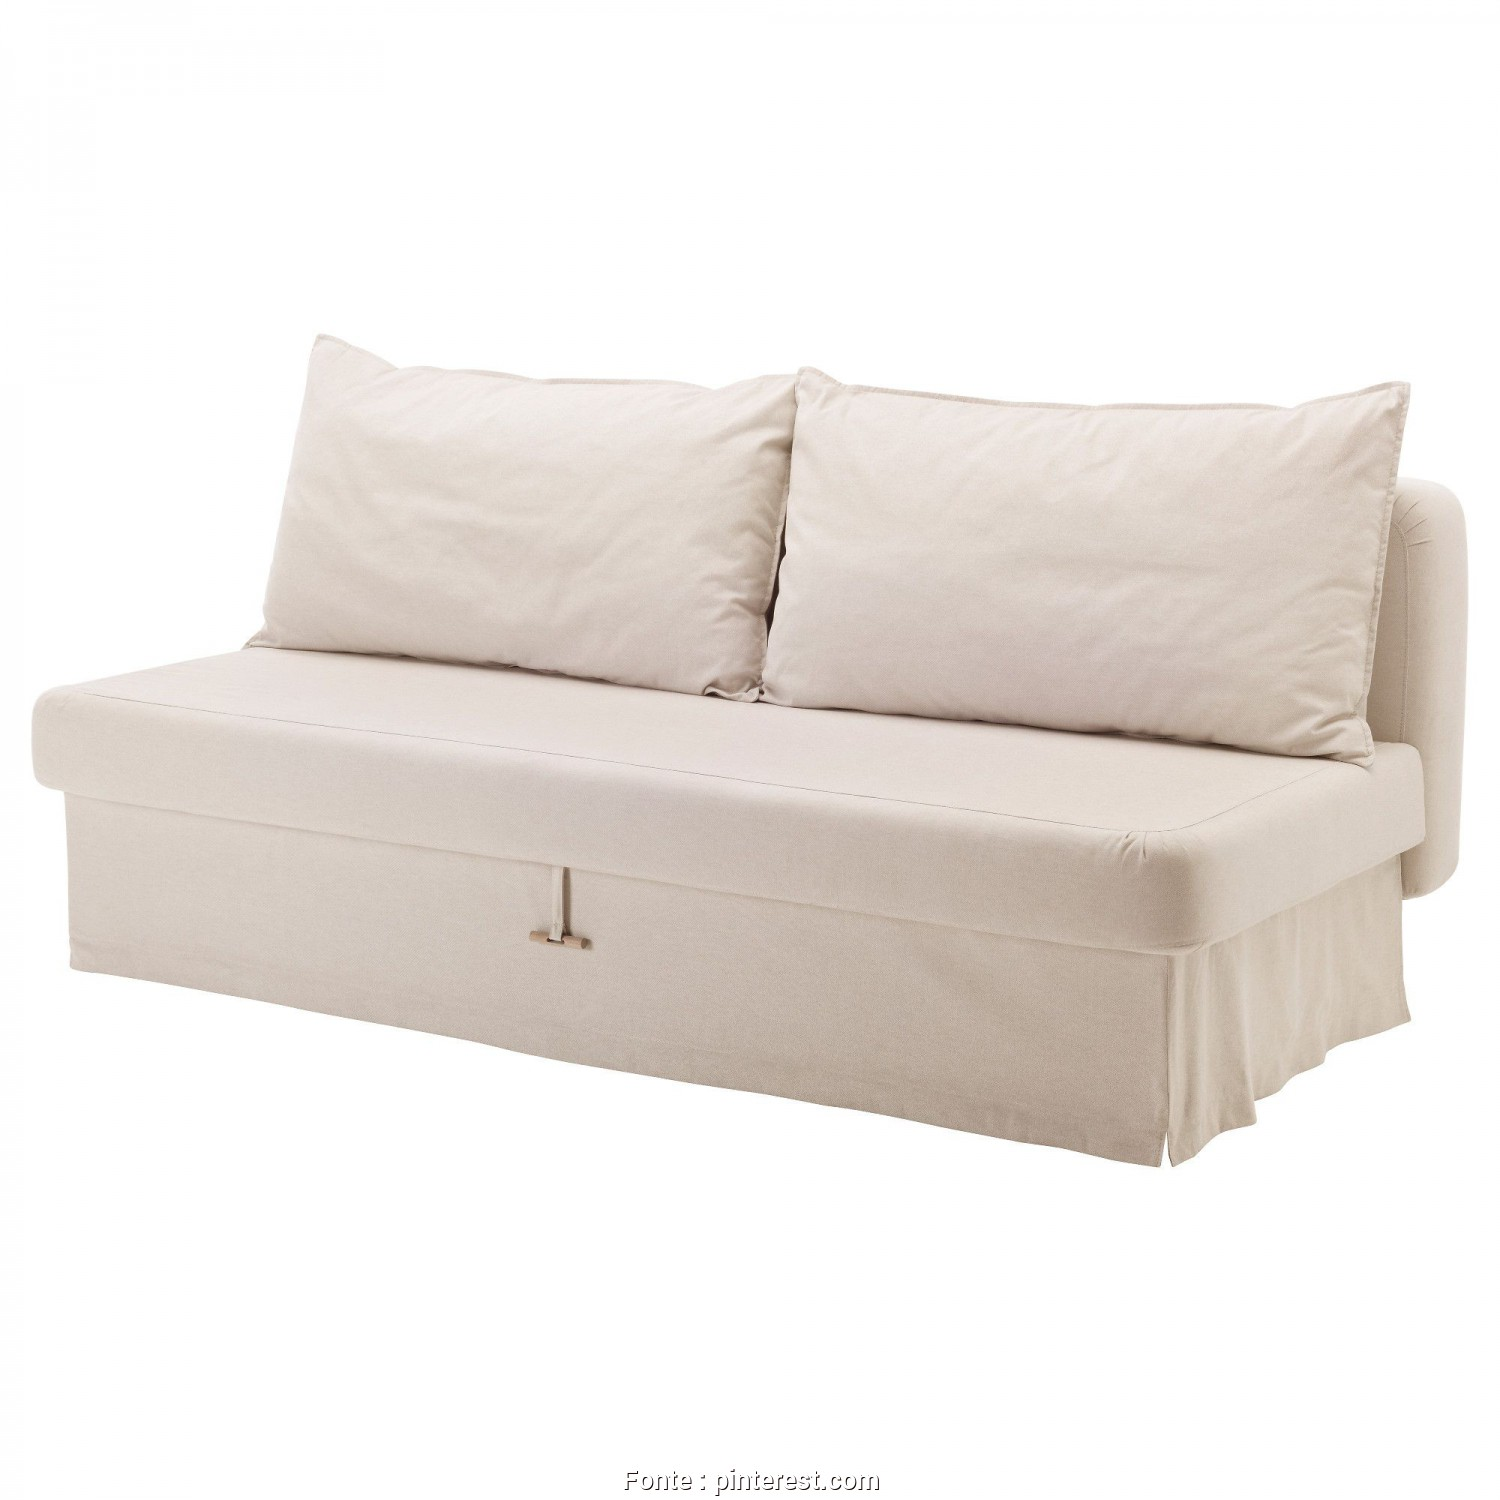 Ikea Backabro 2 Sitzer, Costoso IKEA, HIMMENE, Sofa Bed, , This Sofa Converts Into A Spacious, Really Quickly, Easily, When, Pull, Underframe Upwards, Fold Down The